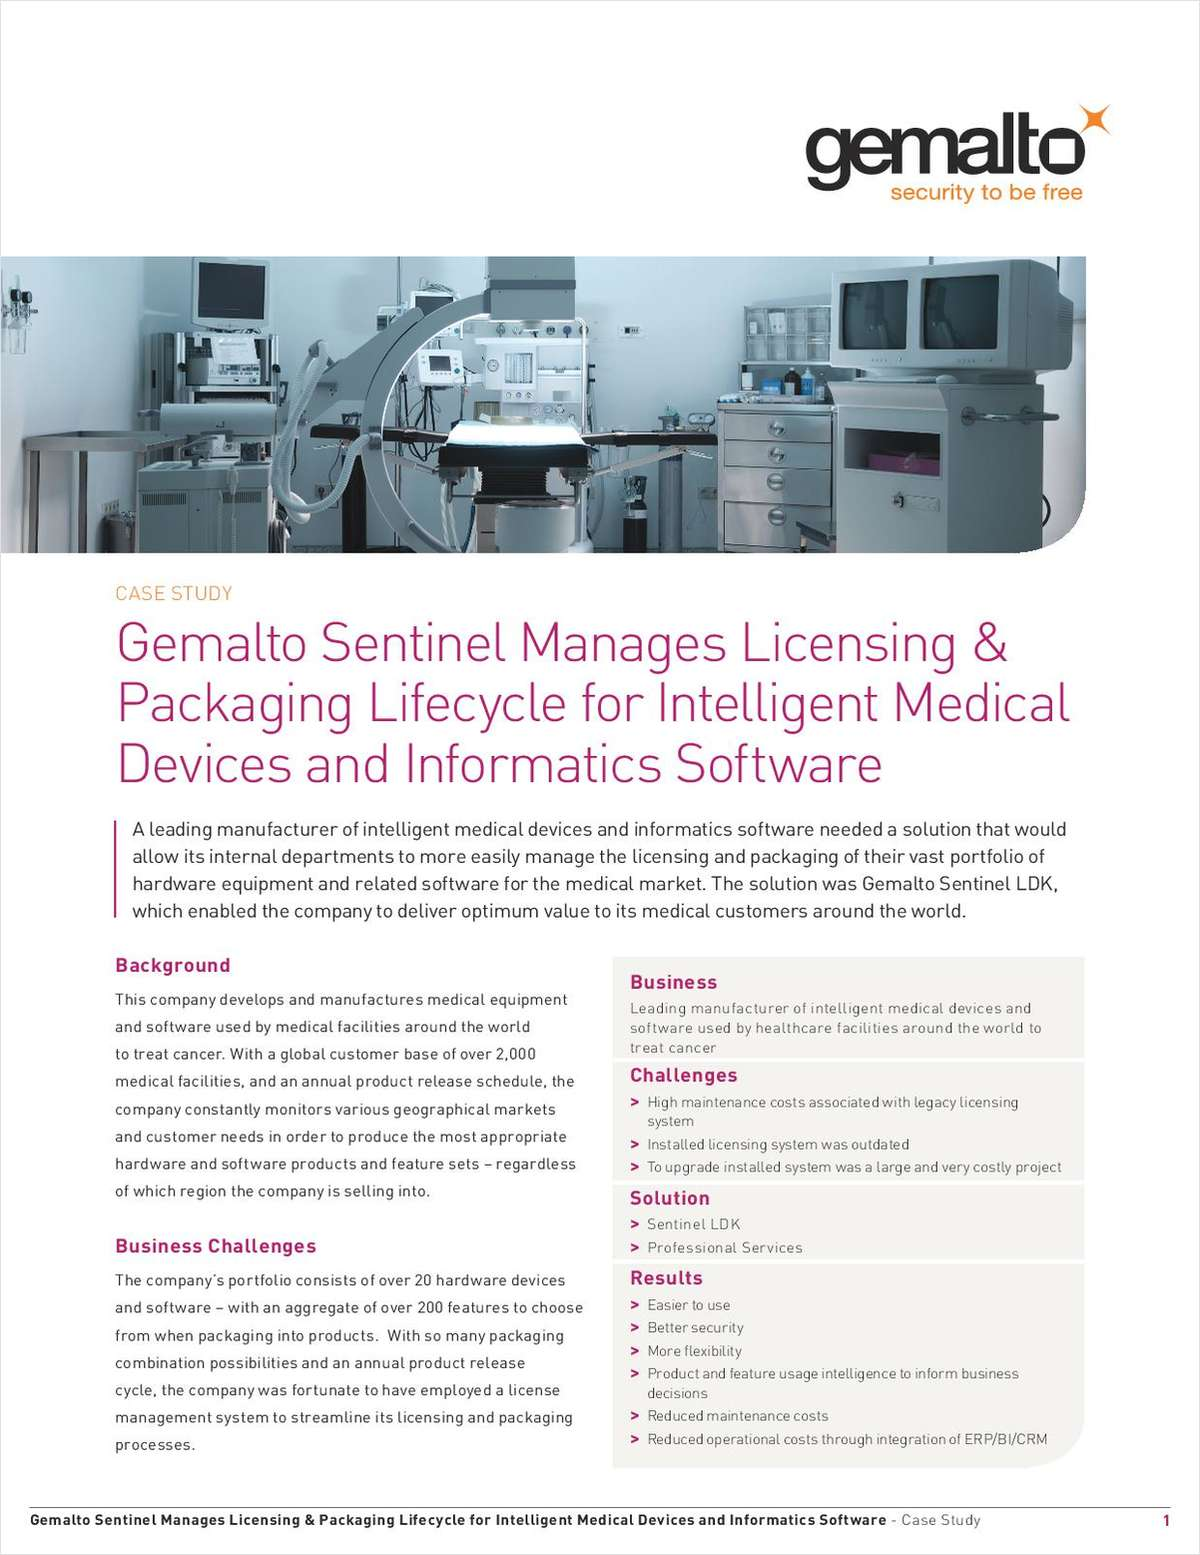 Sentinel Manages Licensing & Packaging Lifecycle for Intelligent Medical Devices and Informatics Software